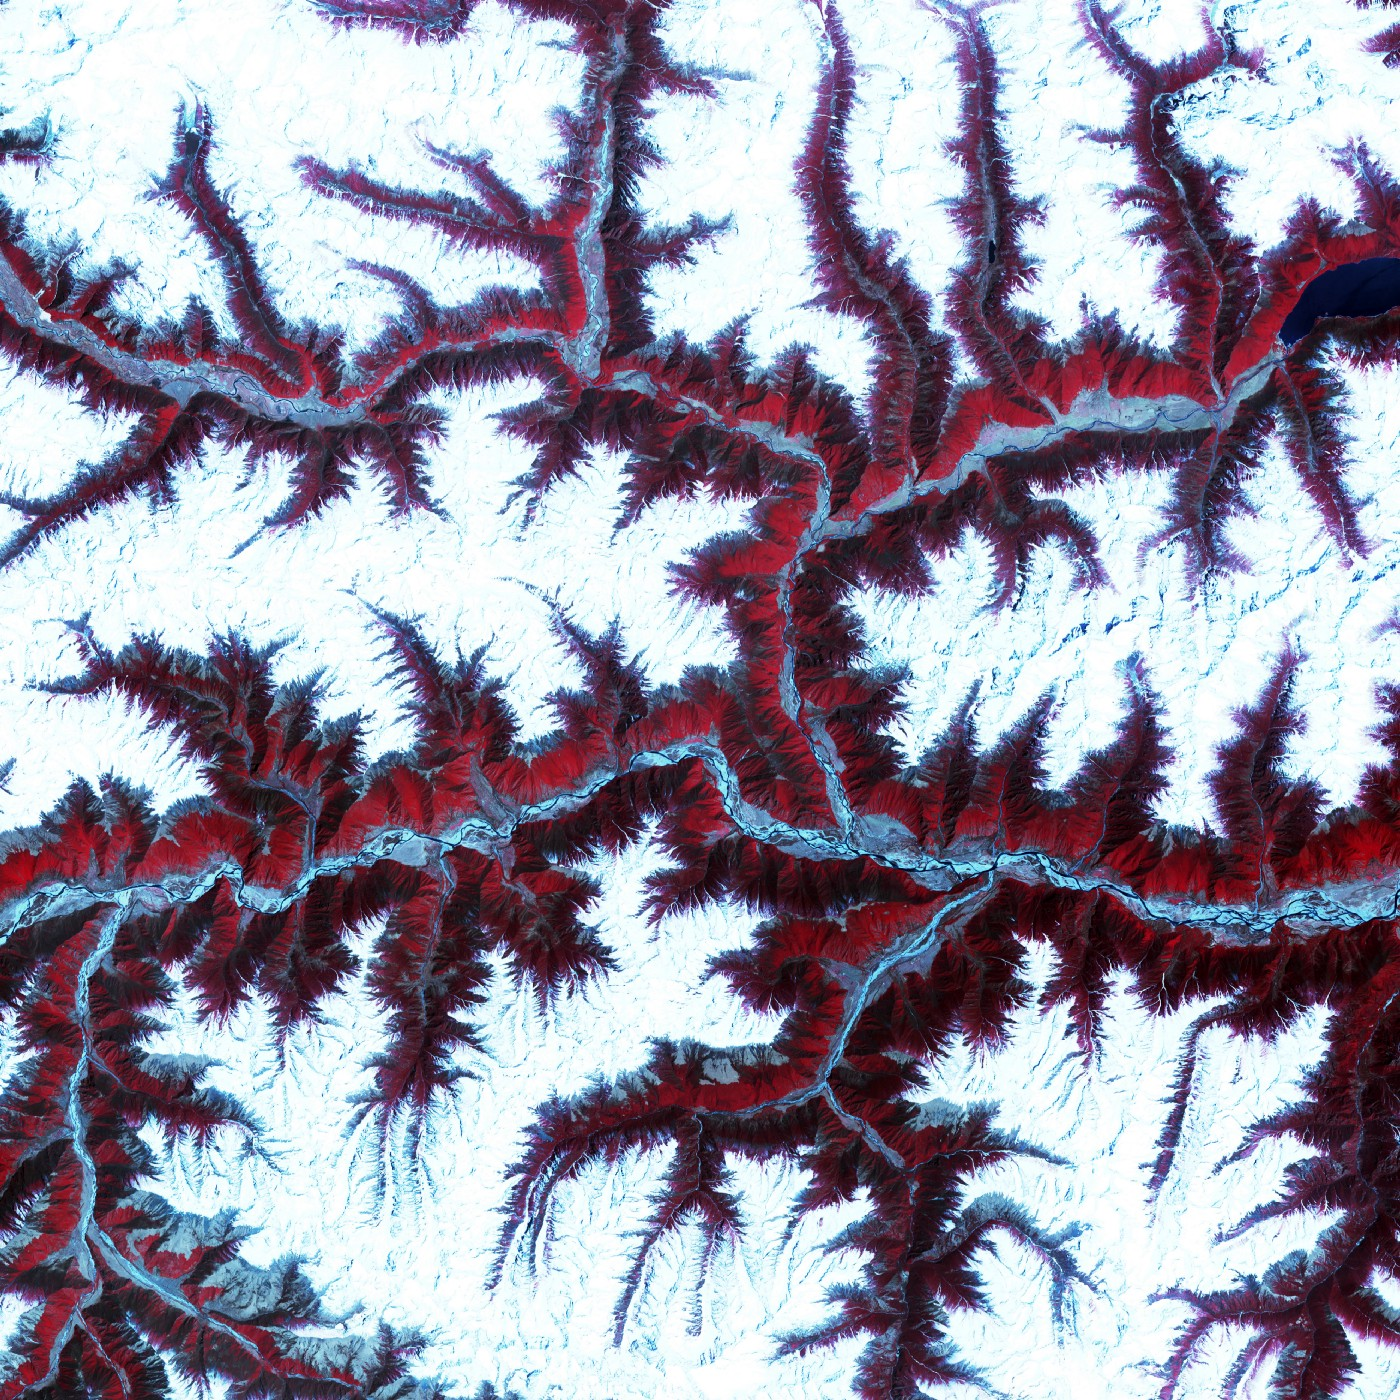 The eastern Himalaya Mountains create an irregular white-on-red patchwork between major rivers in southwestern China.